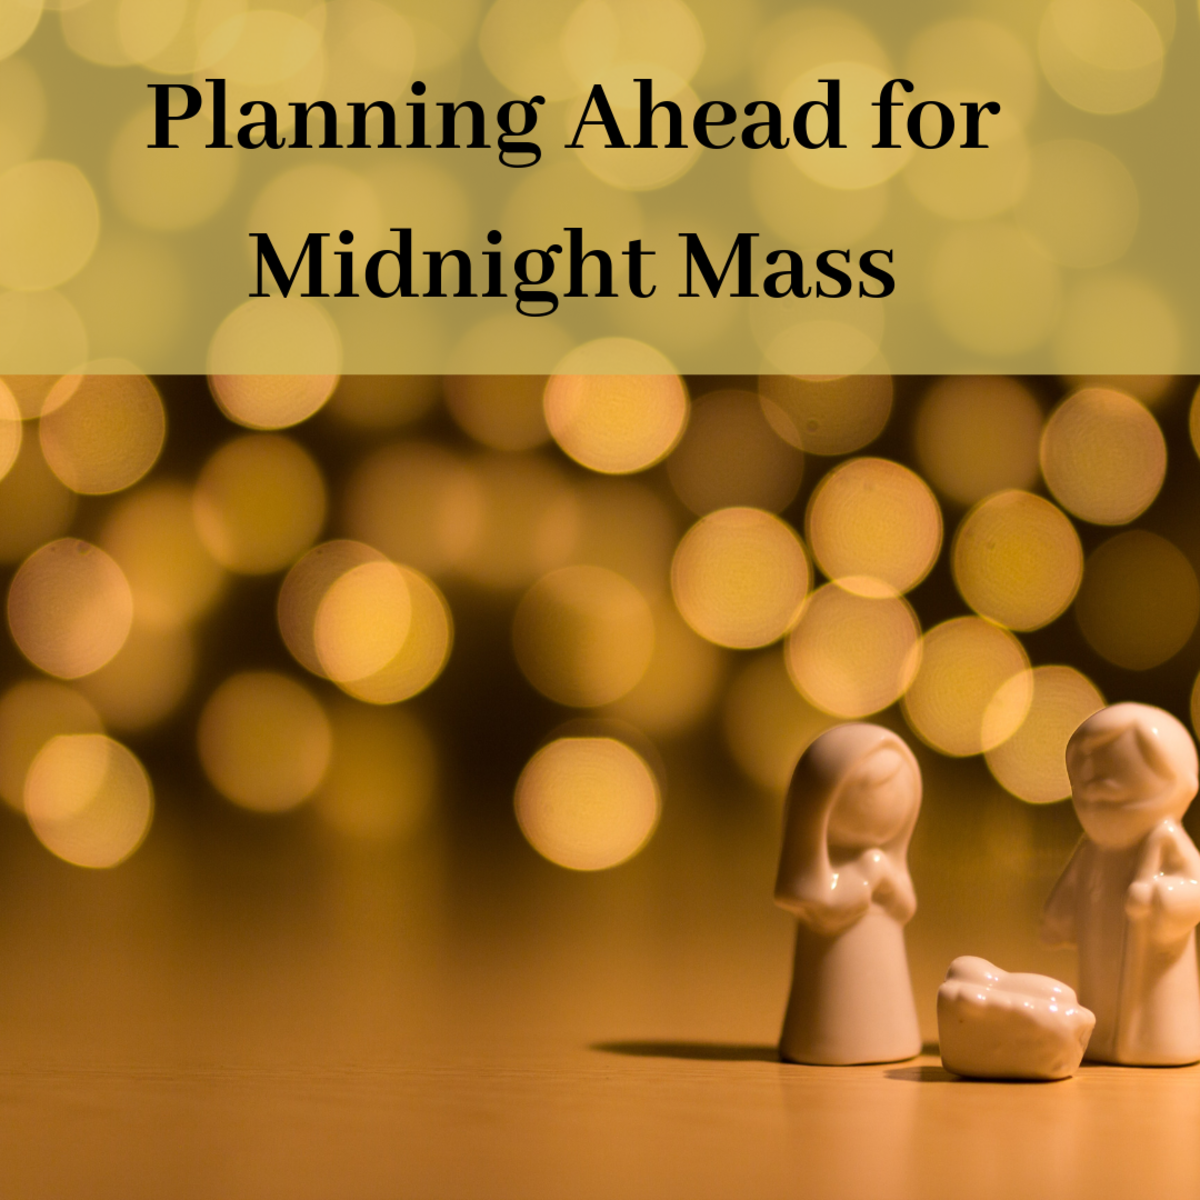 How to Plan Ahead for Midnight Mass